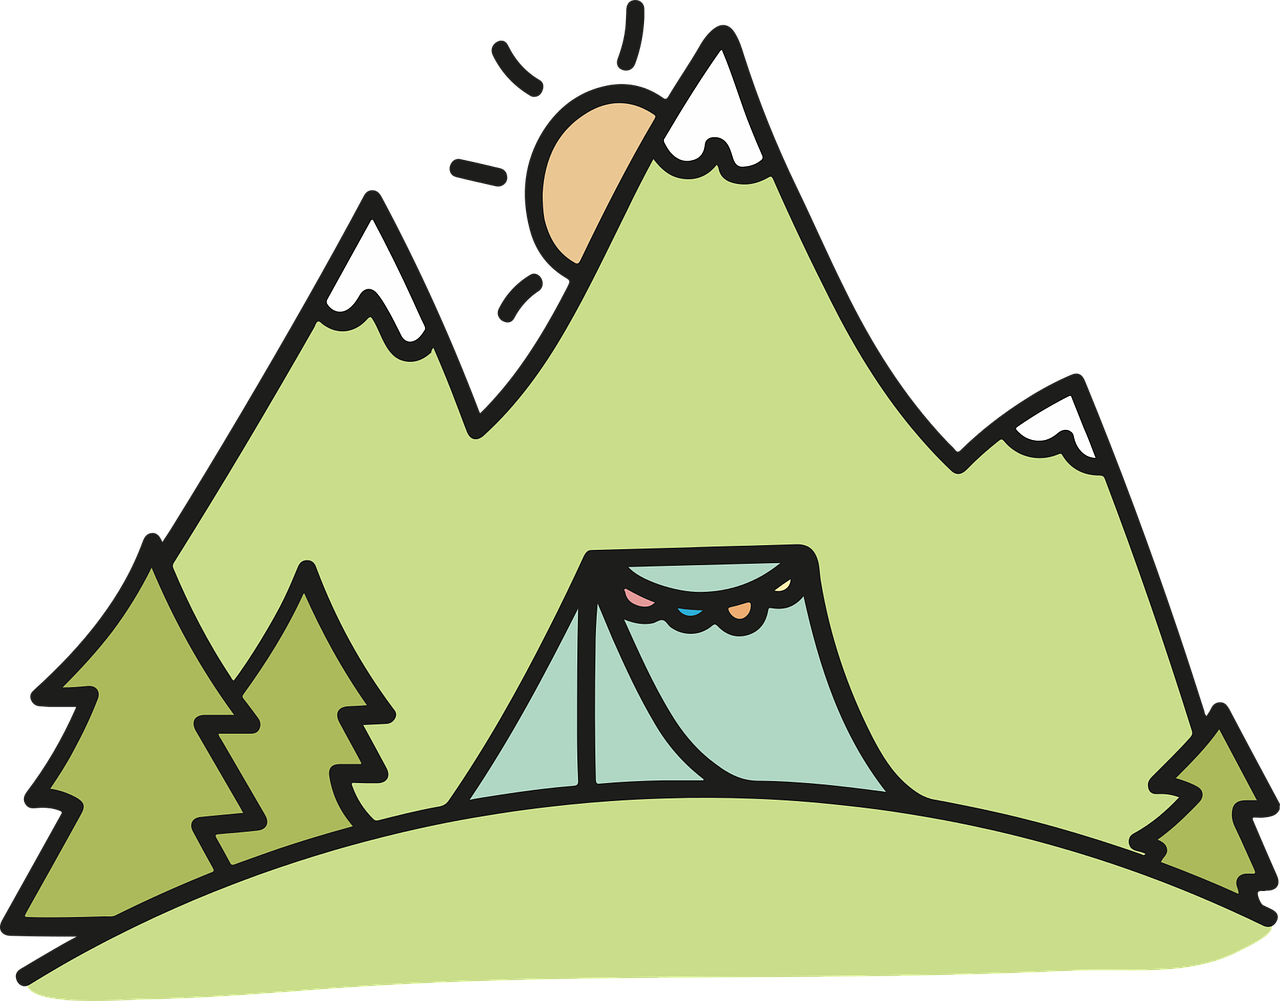 Camping Tent Fir - Free vector graphic on Pixabay